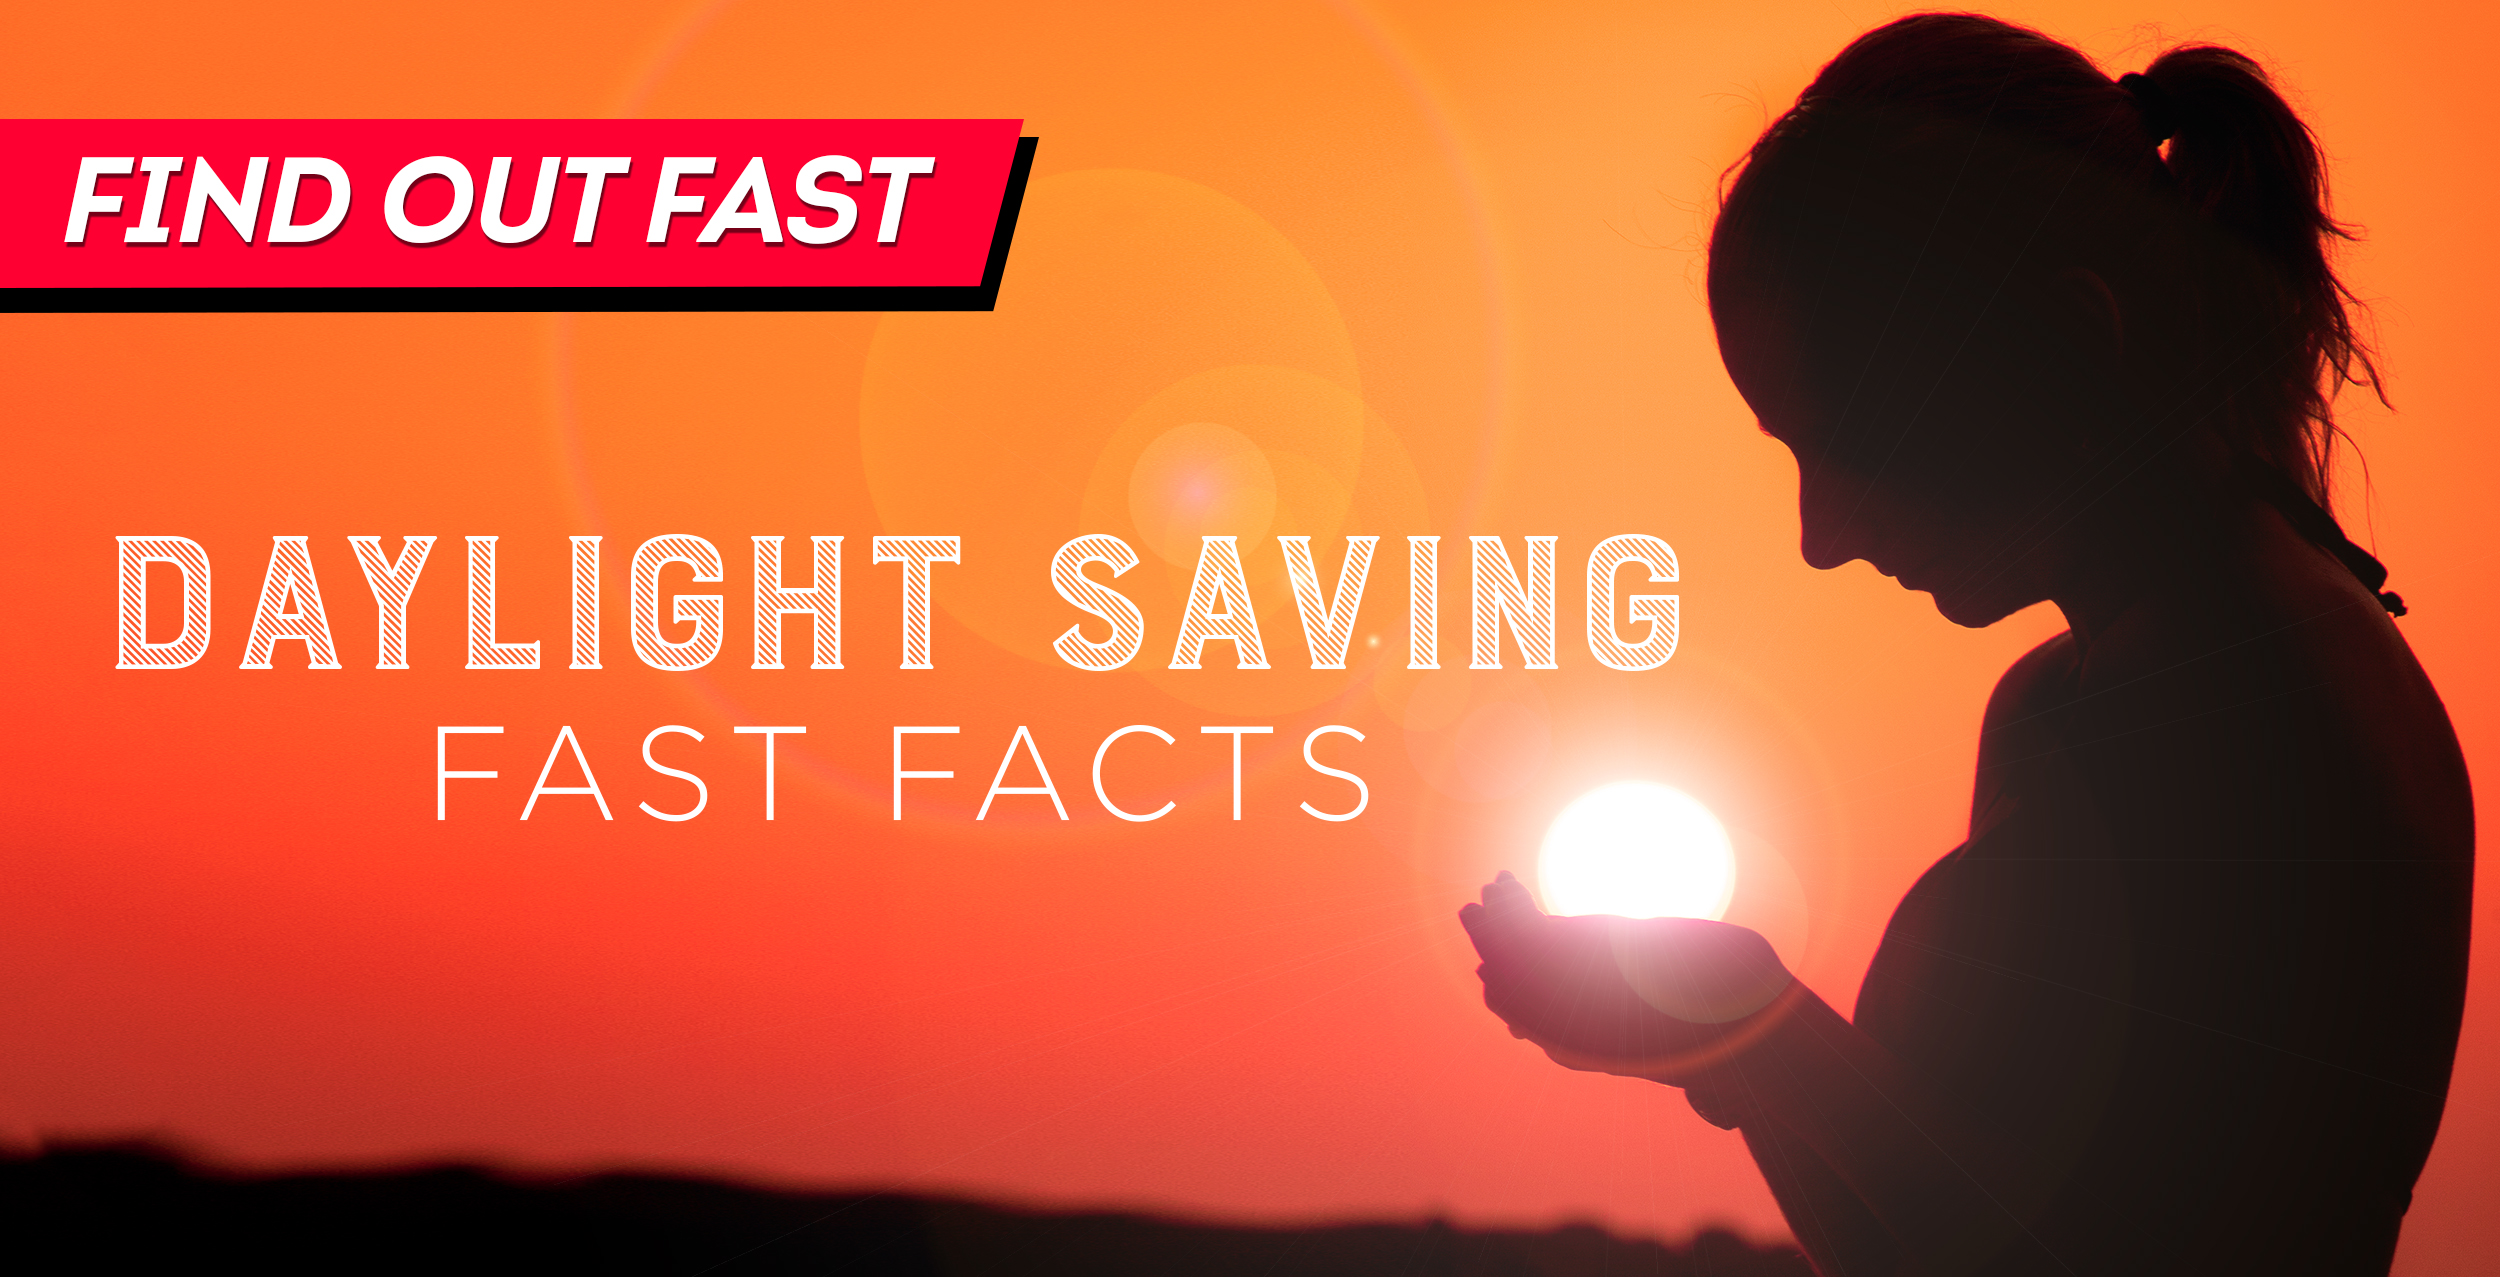 Outdoor lighting for savings and security circuit by entergy find out fast daylight saving fast facts aloadofball Gallery